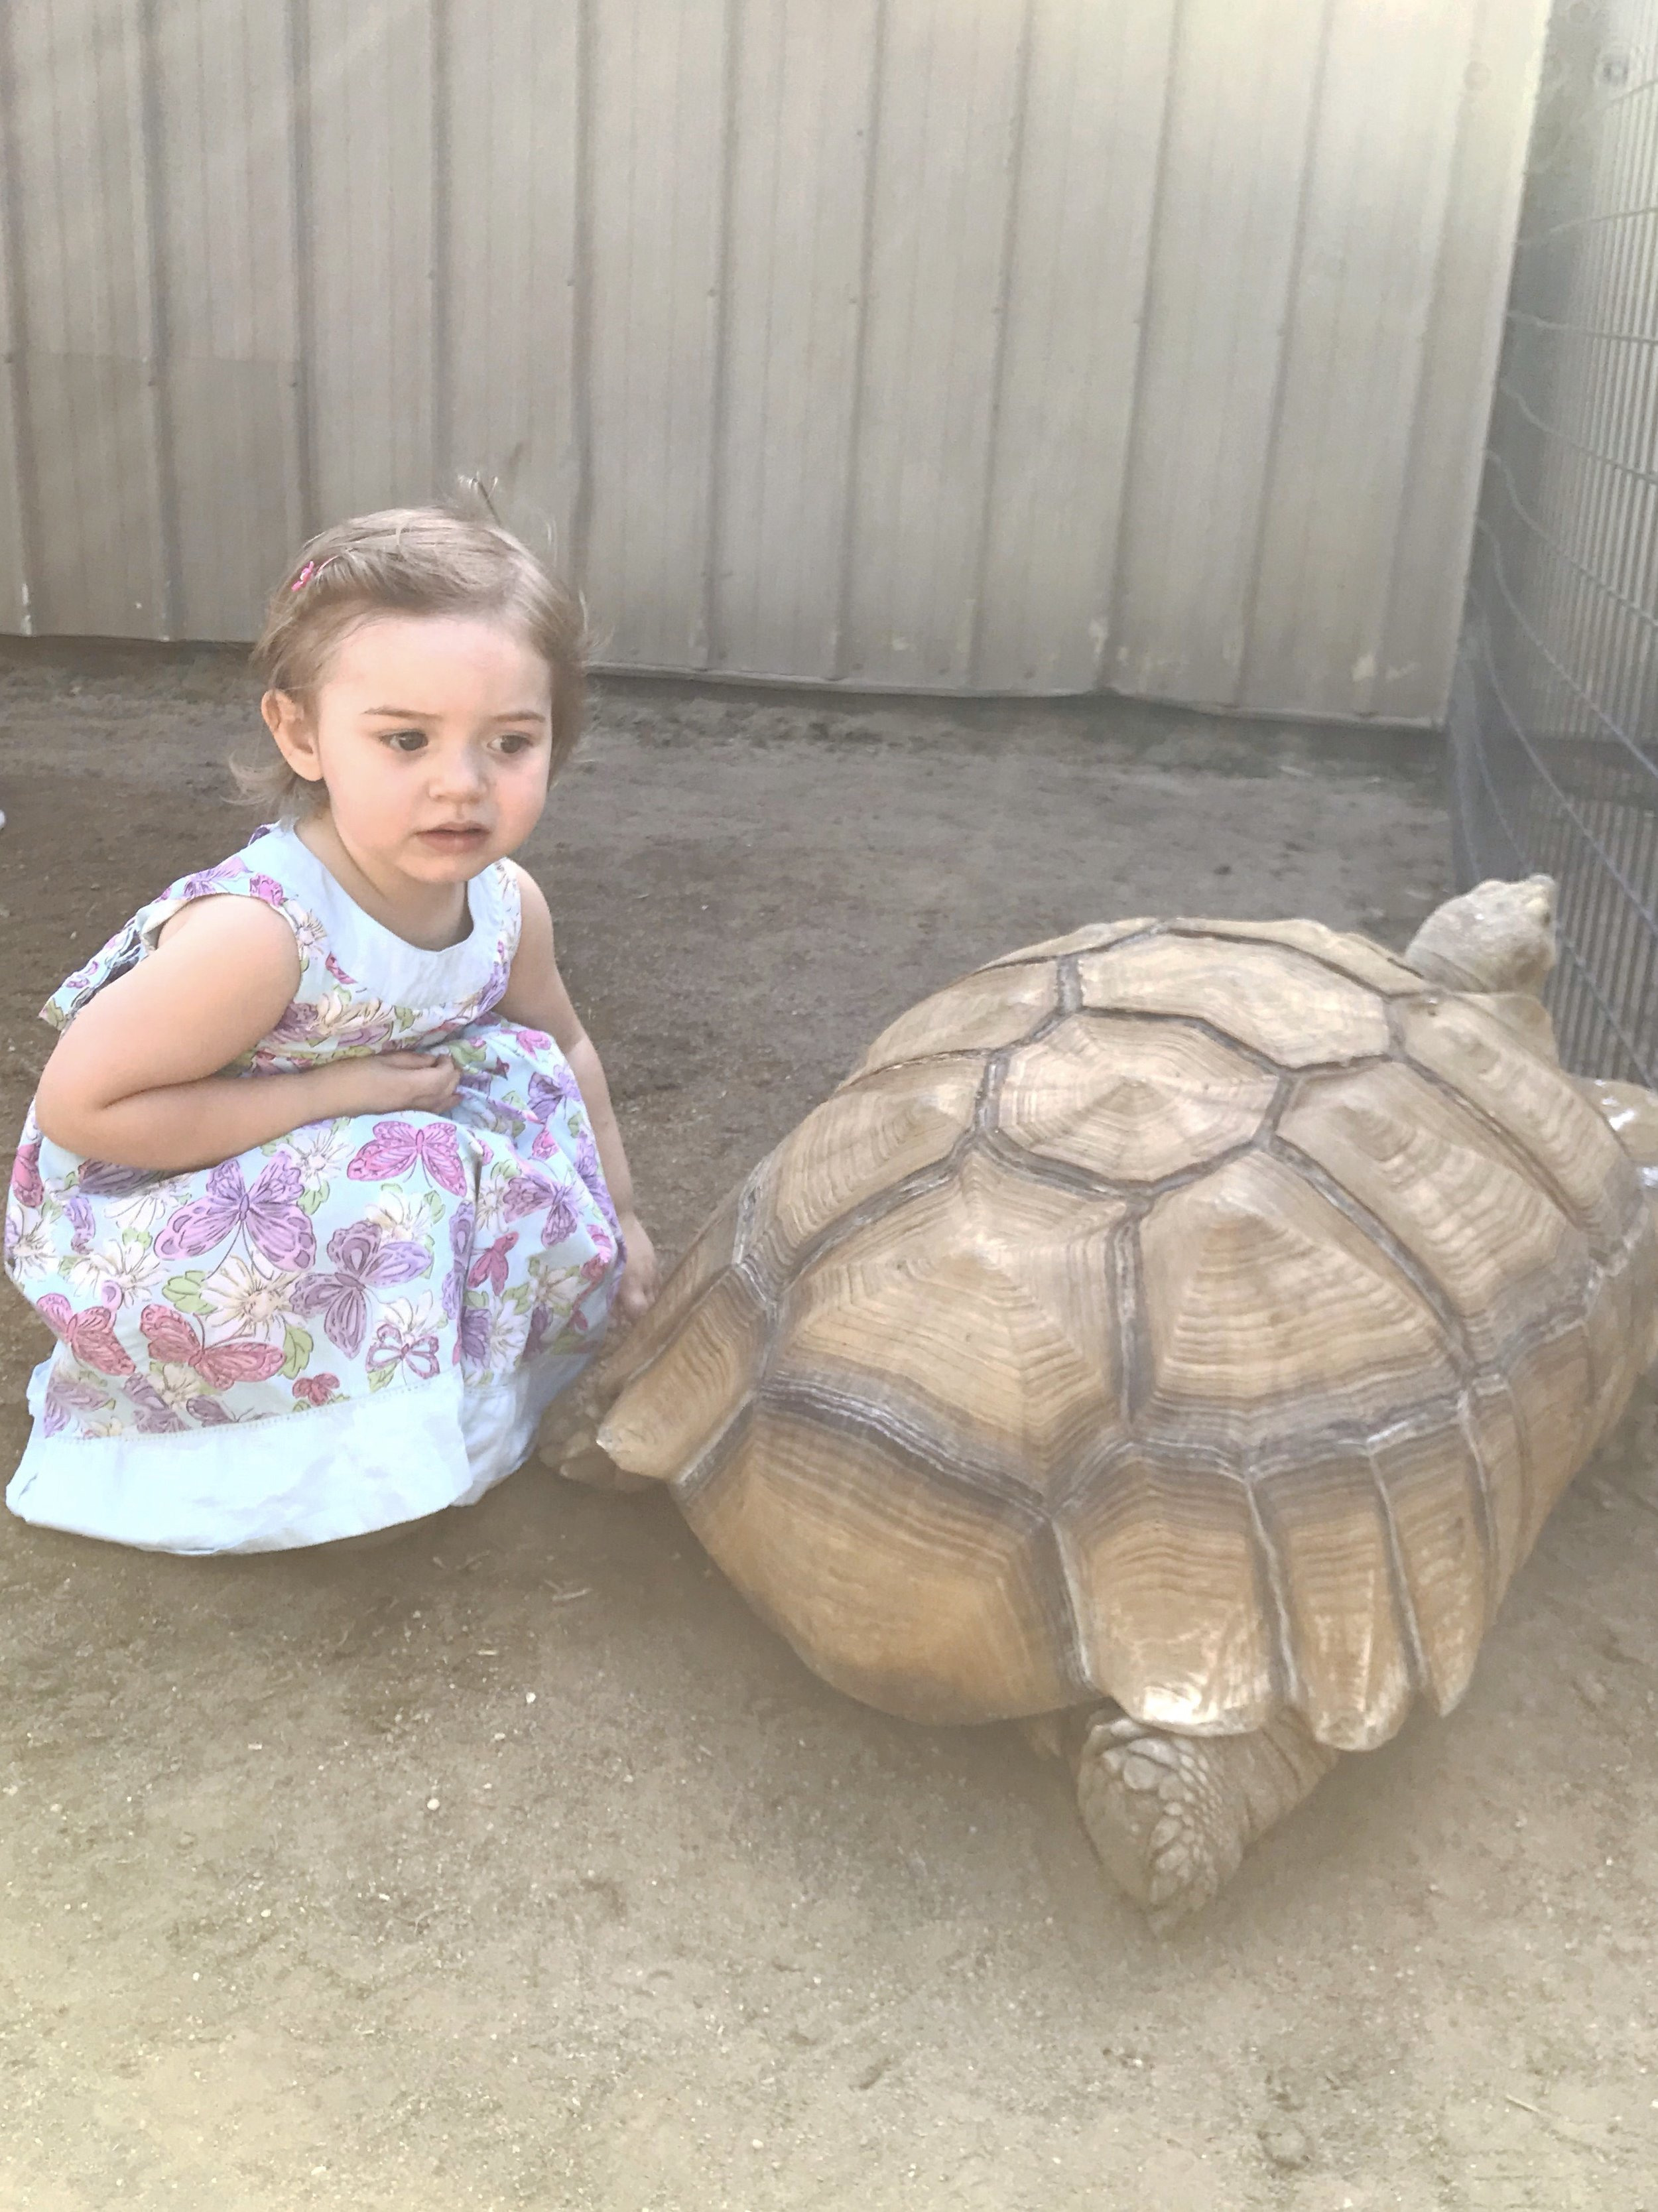 Petting a Giant Turtle | Places to Visit in Wichita, KS Tanganyika Wildlife Park | MALLORIE OWENS